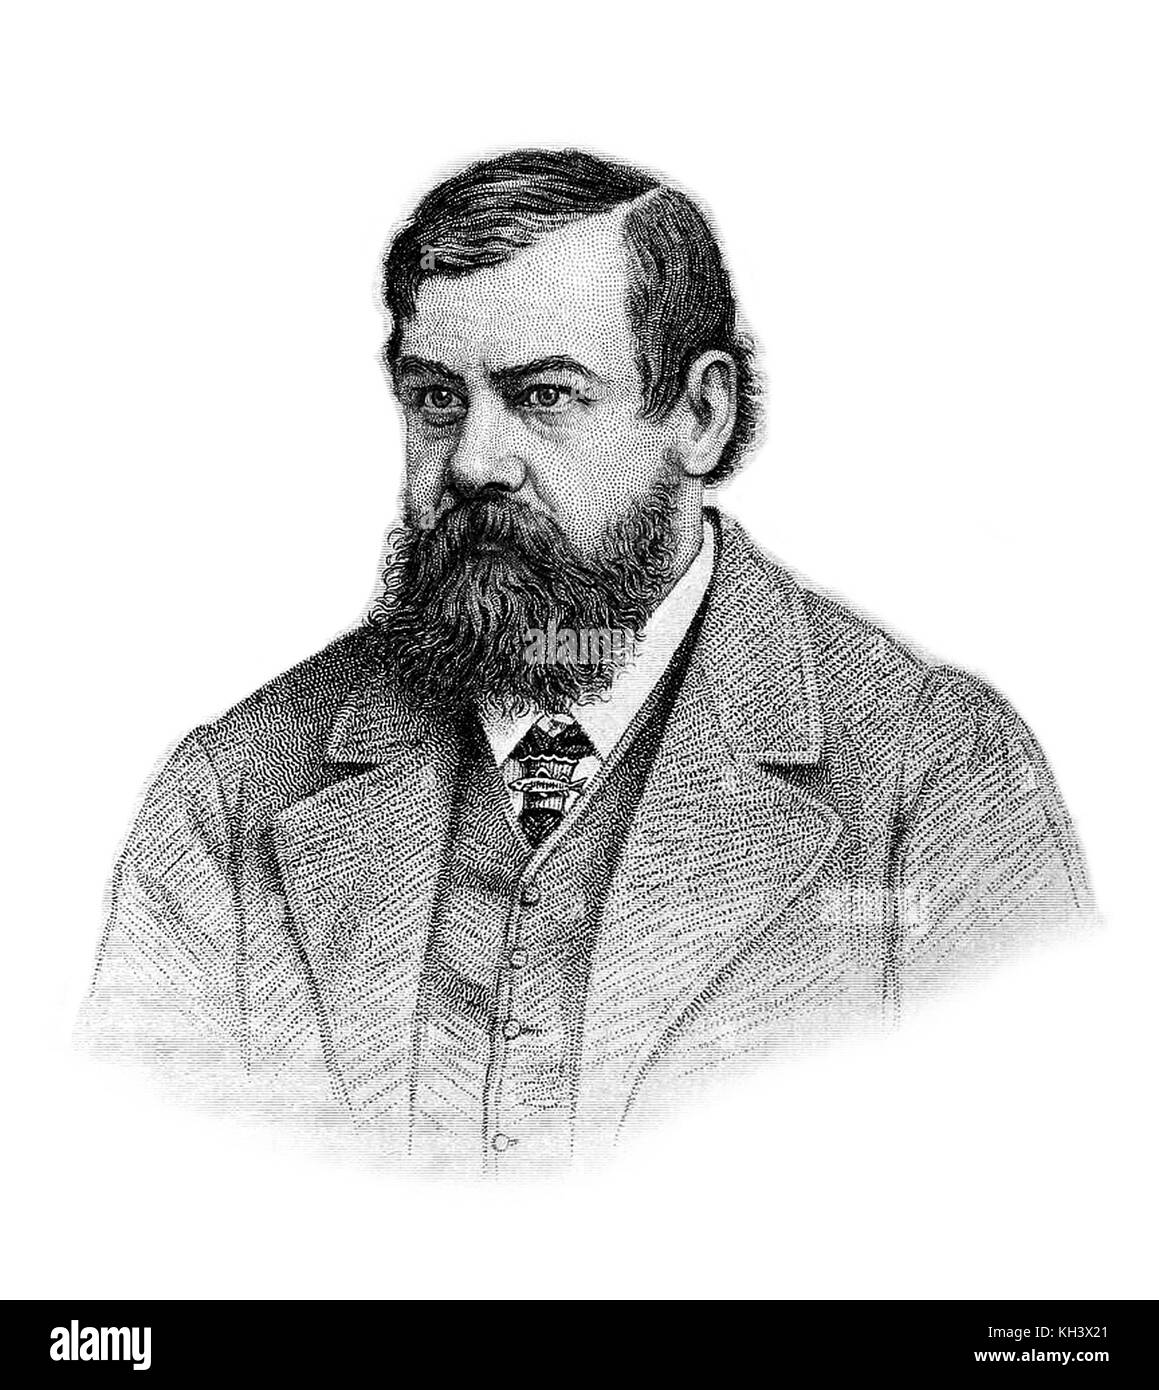 Francis Trevelyan Buckland, known as Frank Buckland, English surgeon, author and natural historian - Stock Image